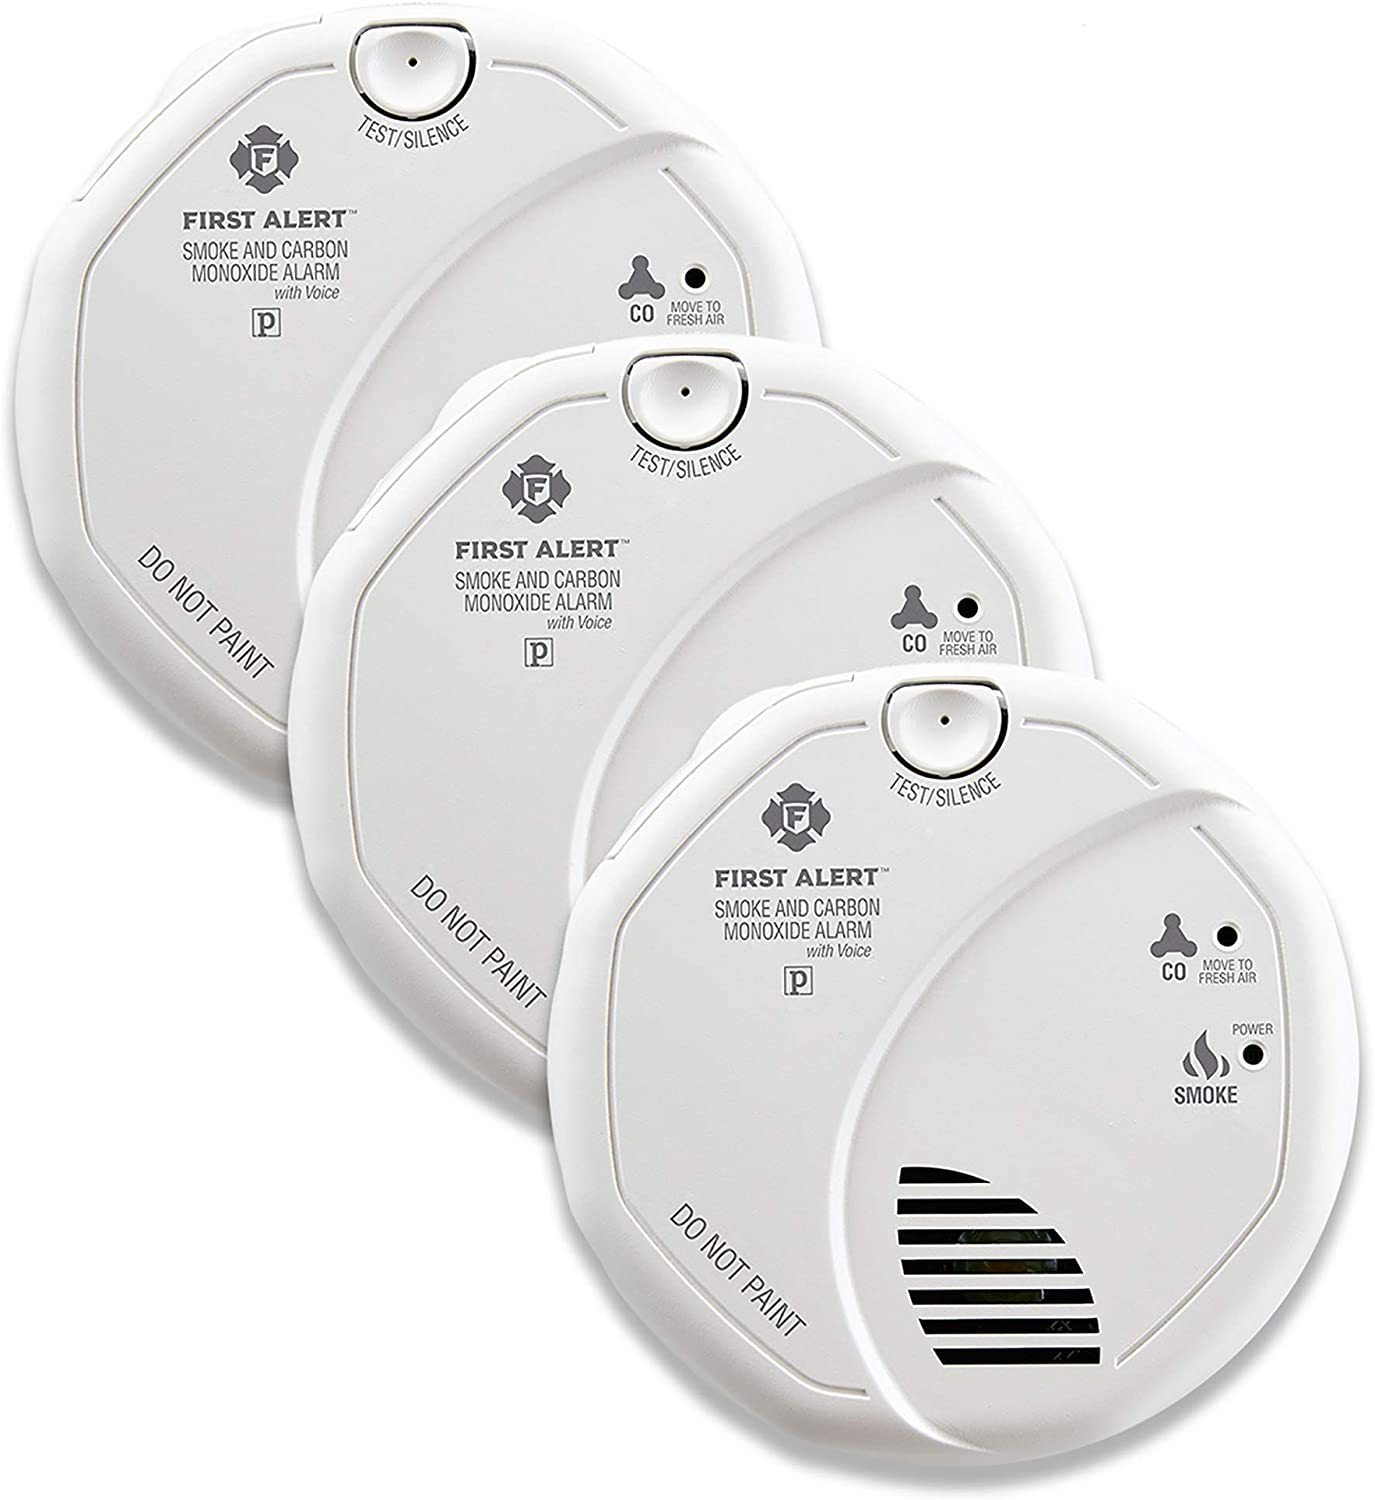 First AlertBRK SC7010BV-3 Hardwired Smoke and Carbon Monoxide (CO) Detector with Talking Photoelectric Sensor, 3-Pack